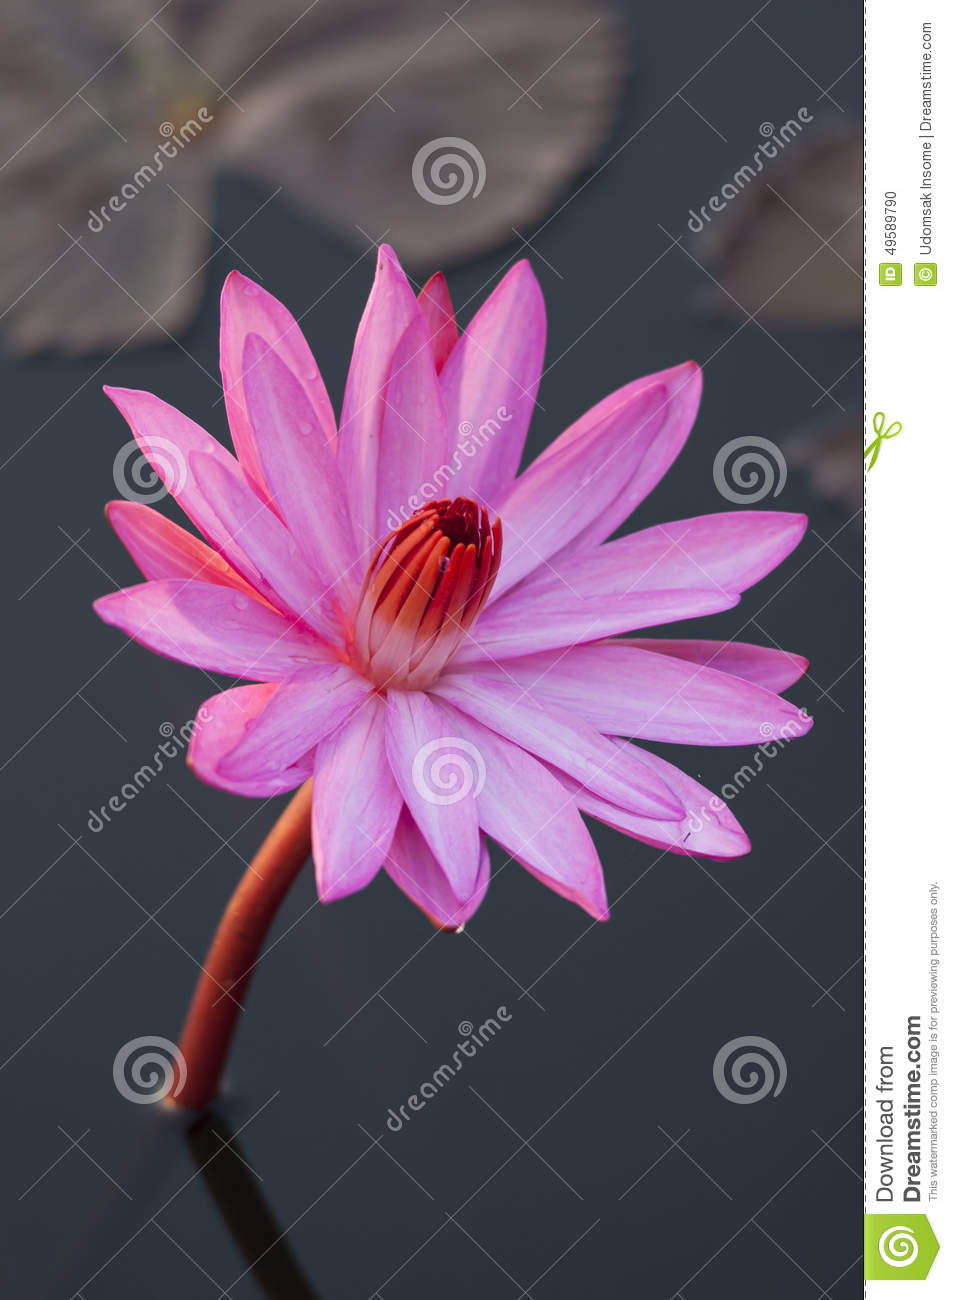 Pink colour lotus flower stock photo image of beautiful 49589790 pink colour lotus flower izmirmasajfo